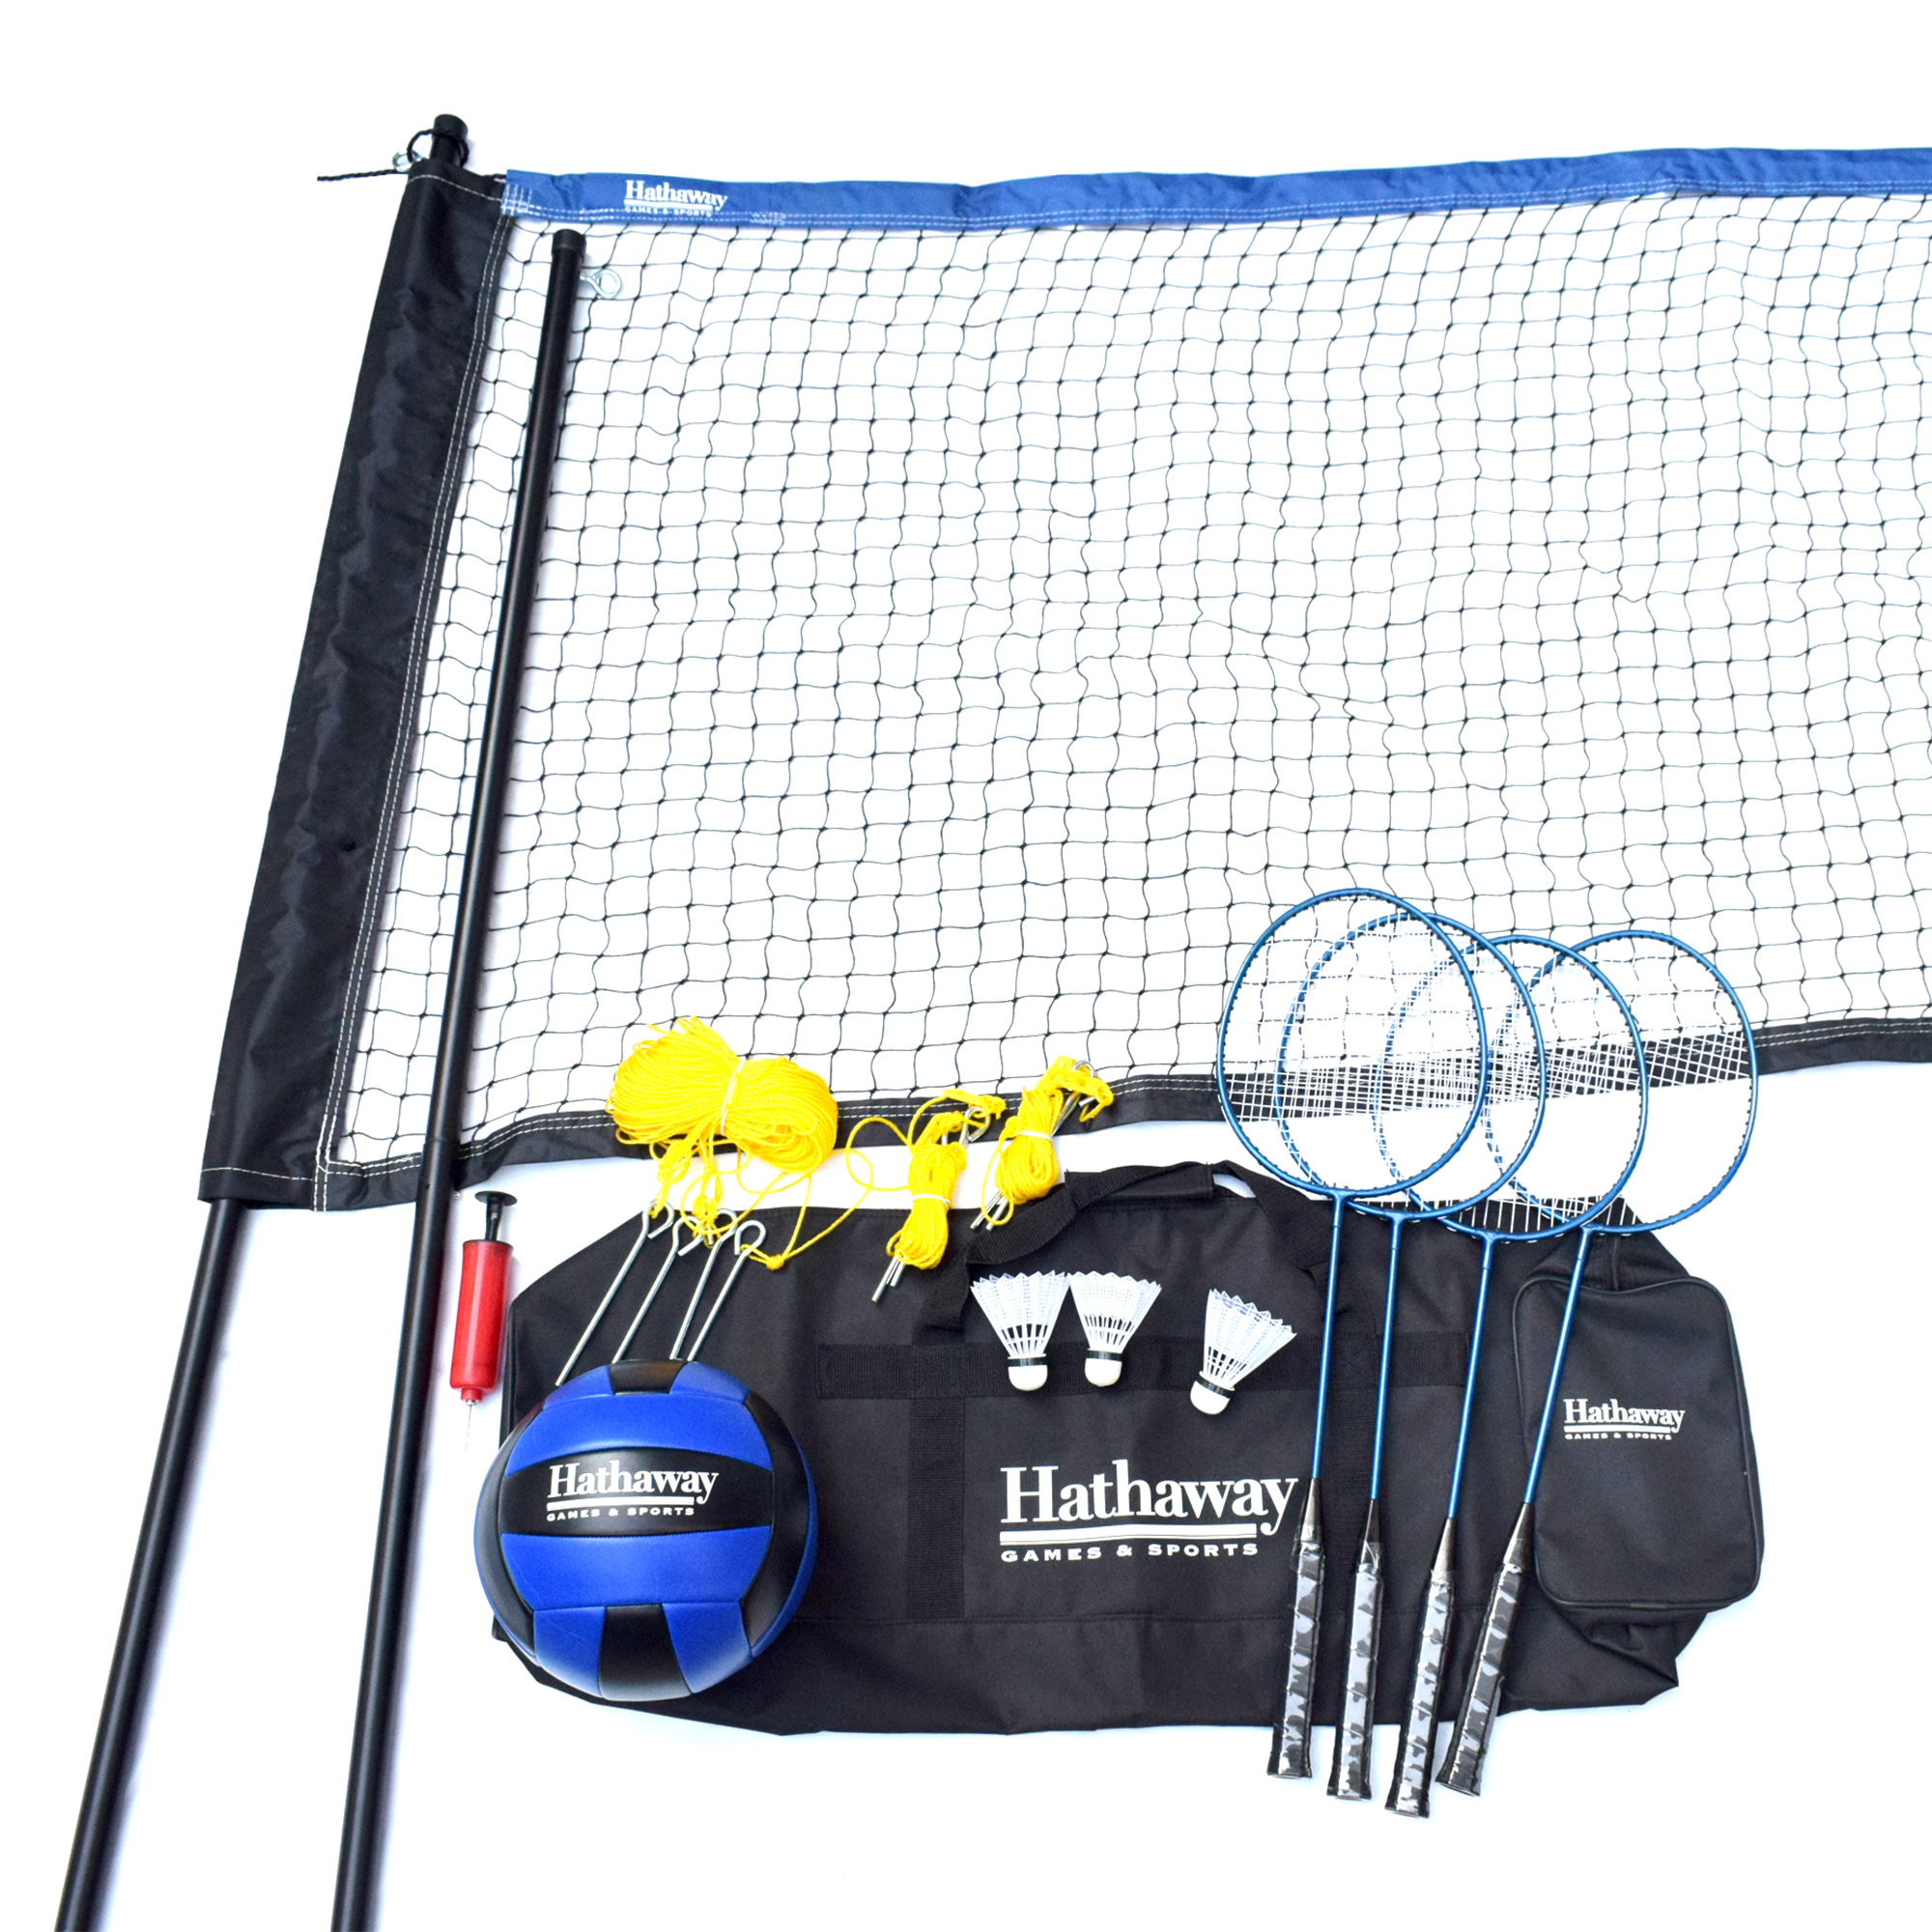 Hathaway Volleyball/Badminton Set w/Net & poles, Stakes, Guides, Volleyball, Rackets, Shuttlecocks, & Nylon Carry Bag - Multicolored